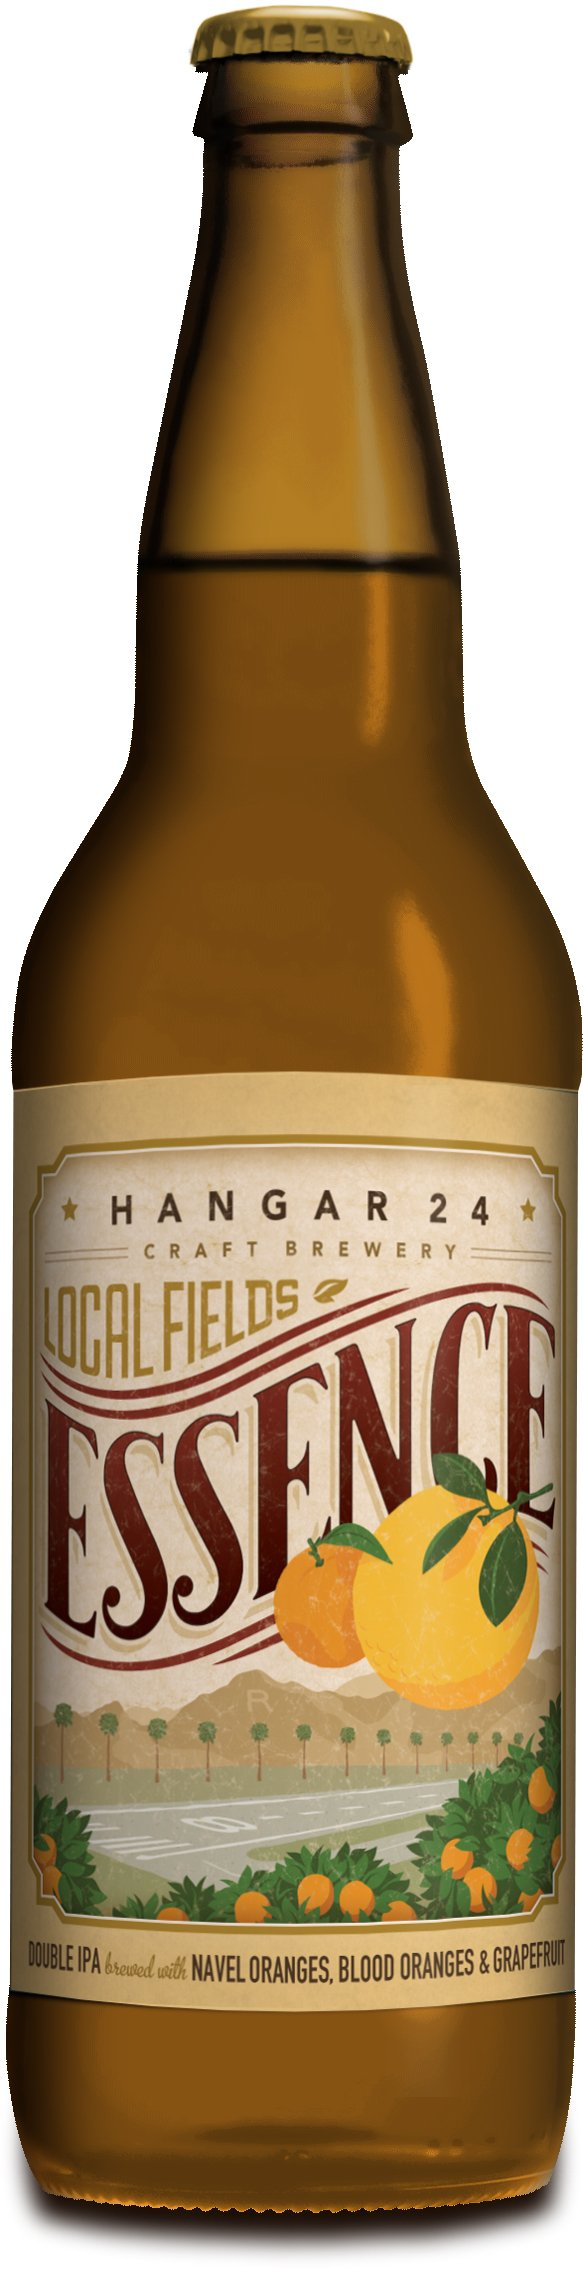 Hangar 24 Local Fields Essence